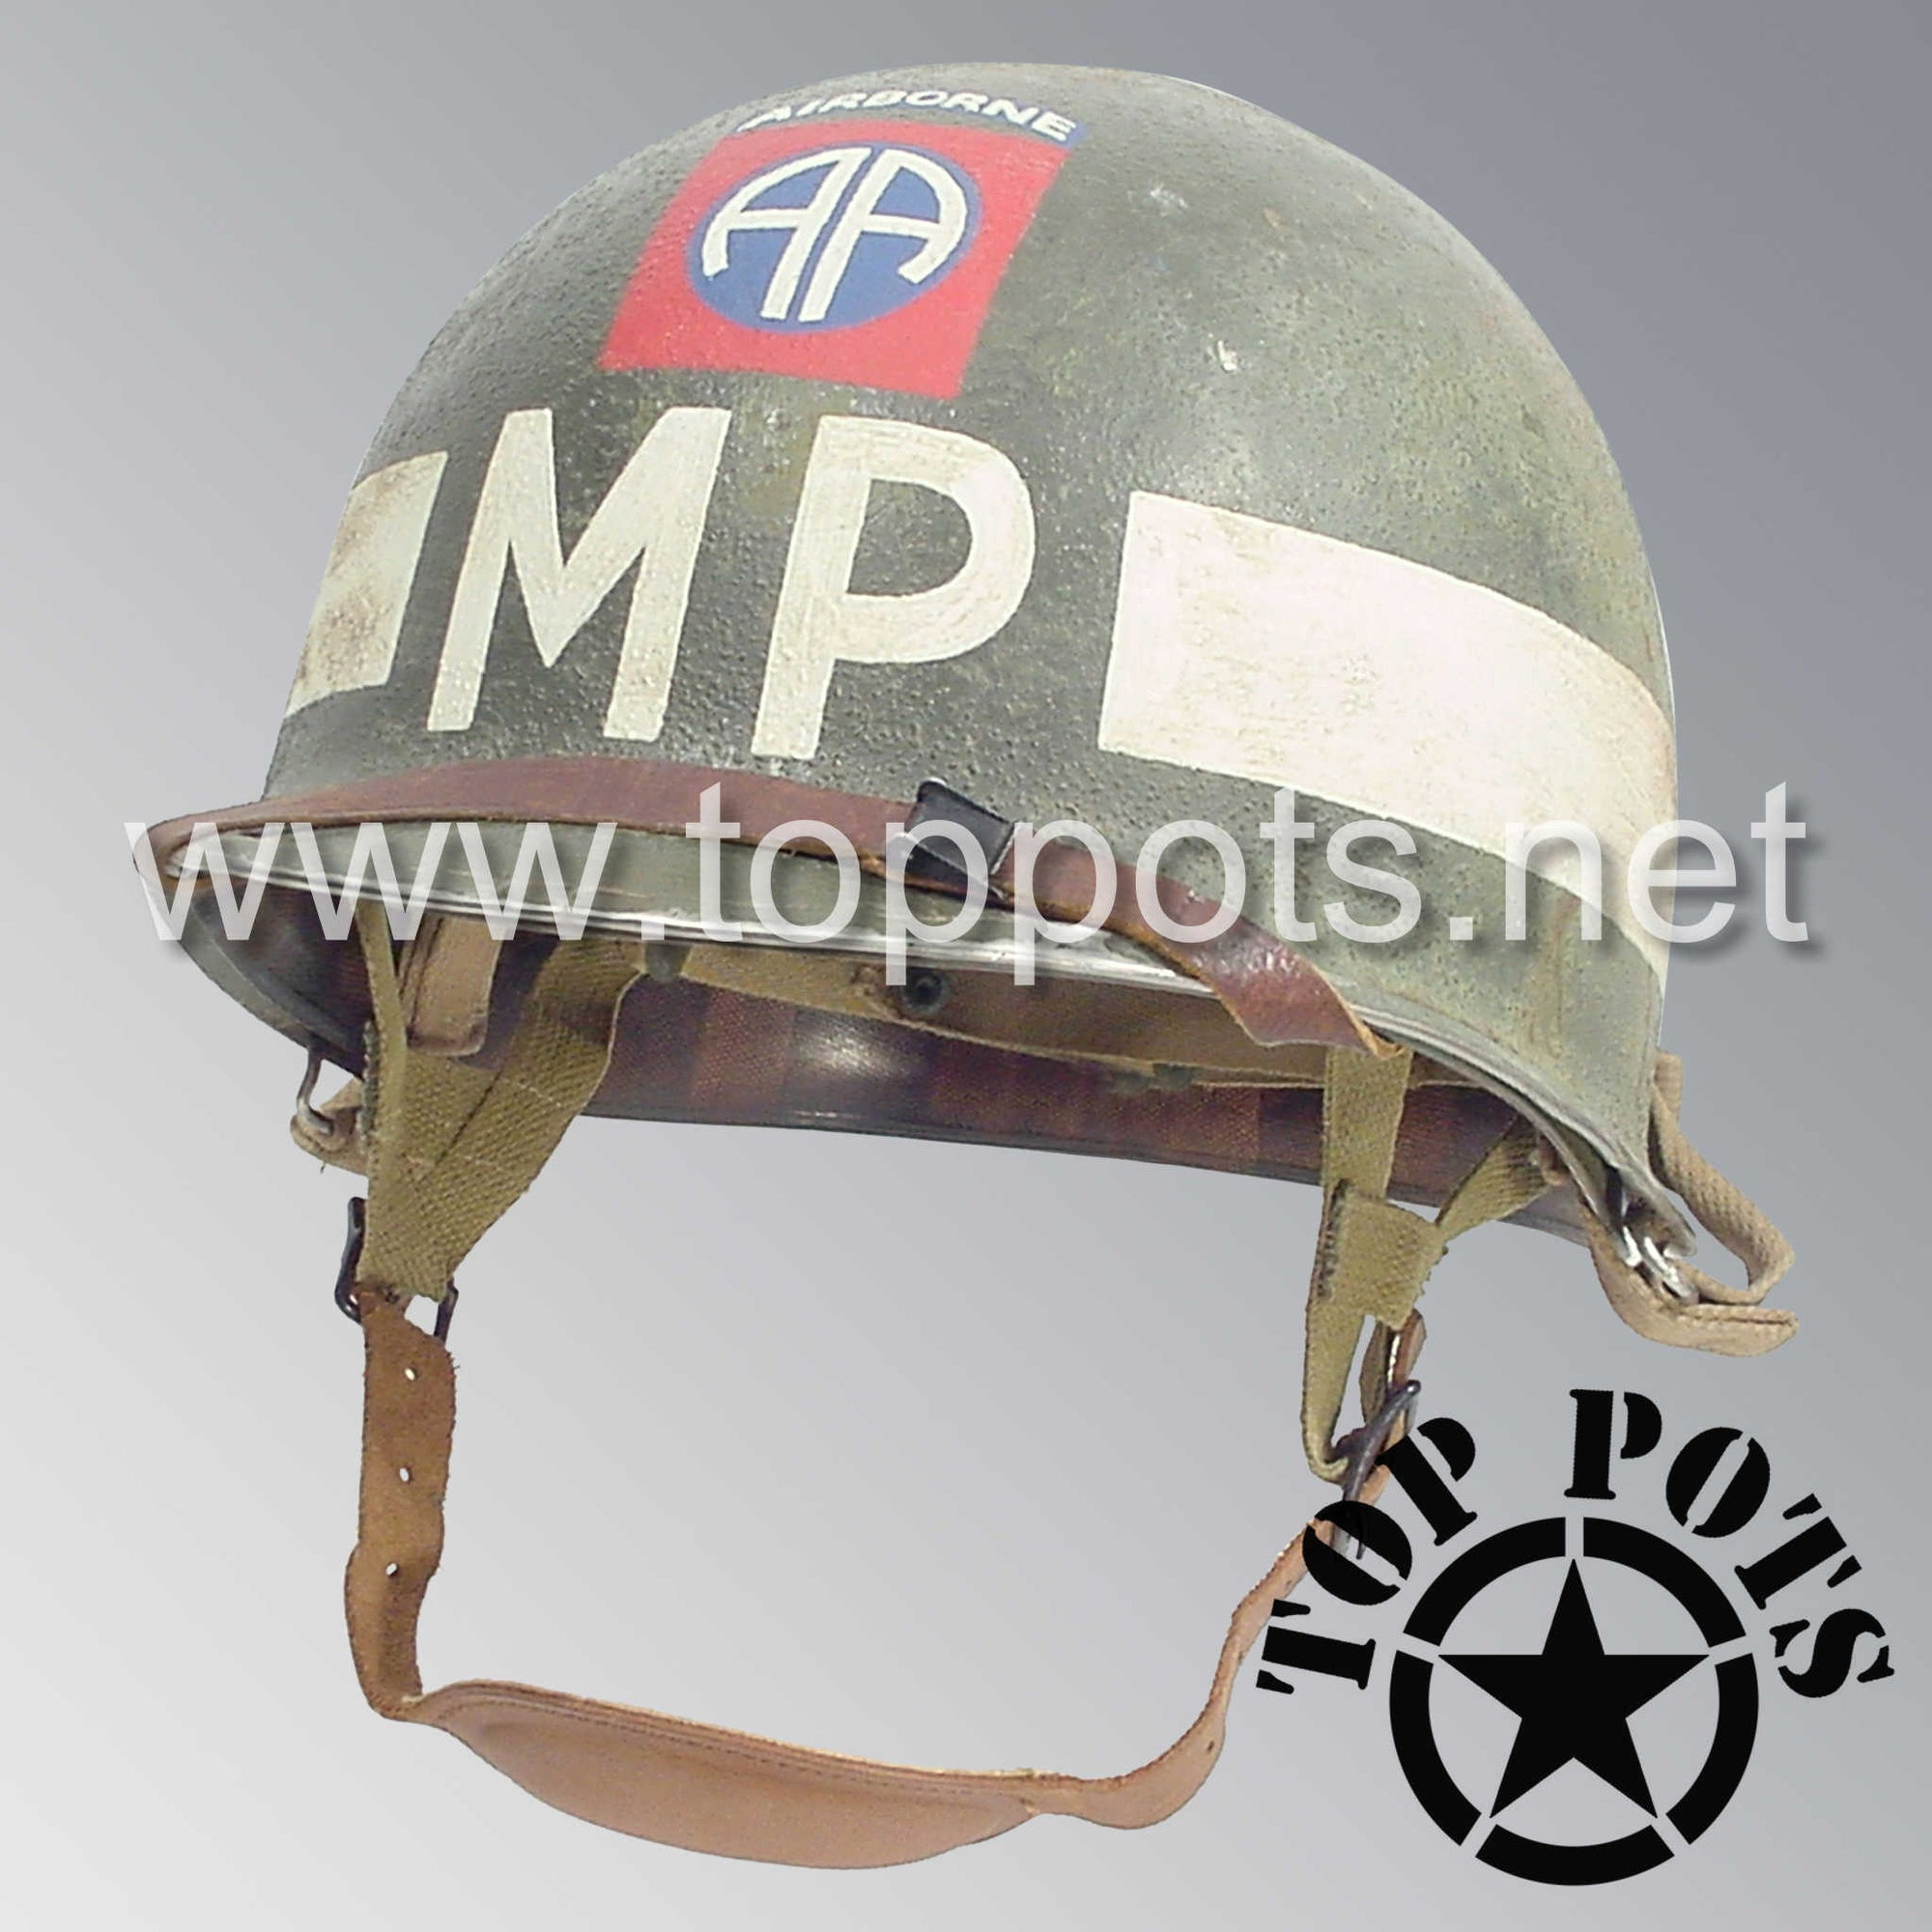 Image 1 of WWII US Army Aged Original M1C Paratrooper Airborne Helmet Swivel Bale Shell and Liner with 82nd Airborne Military Police Batallion MP Emblem